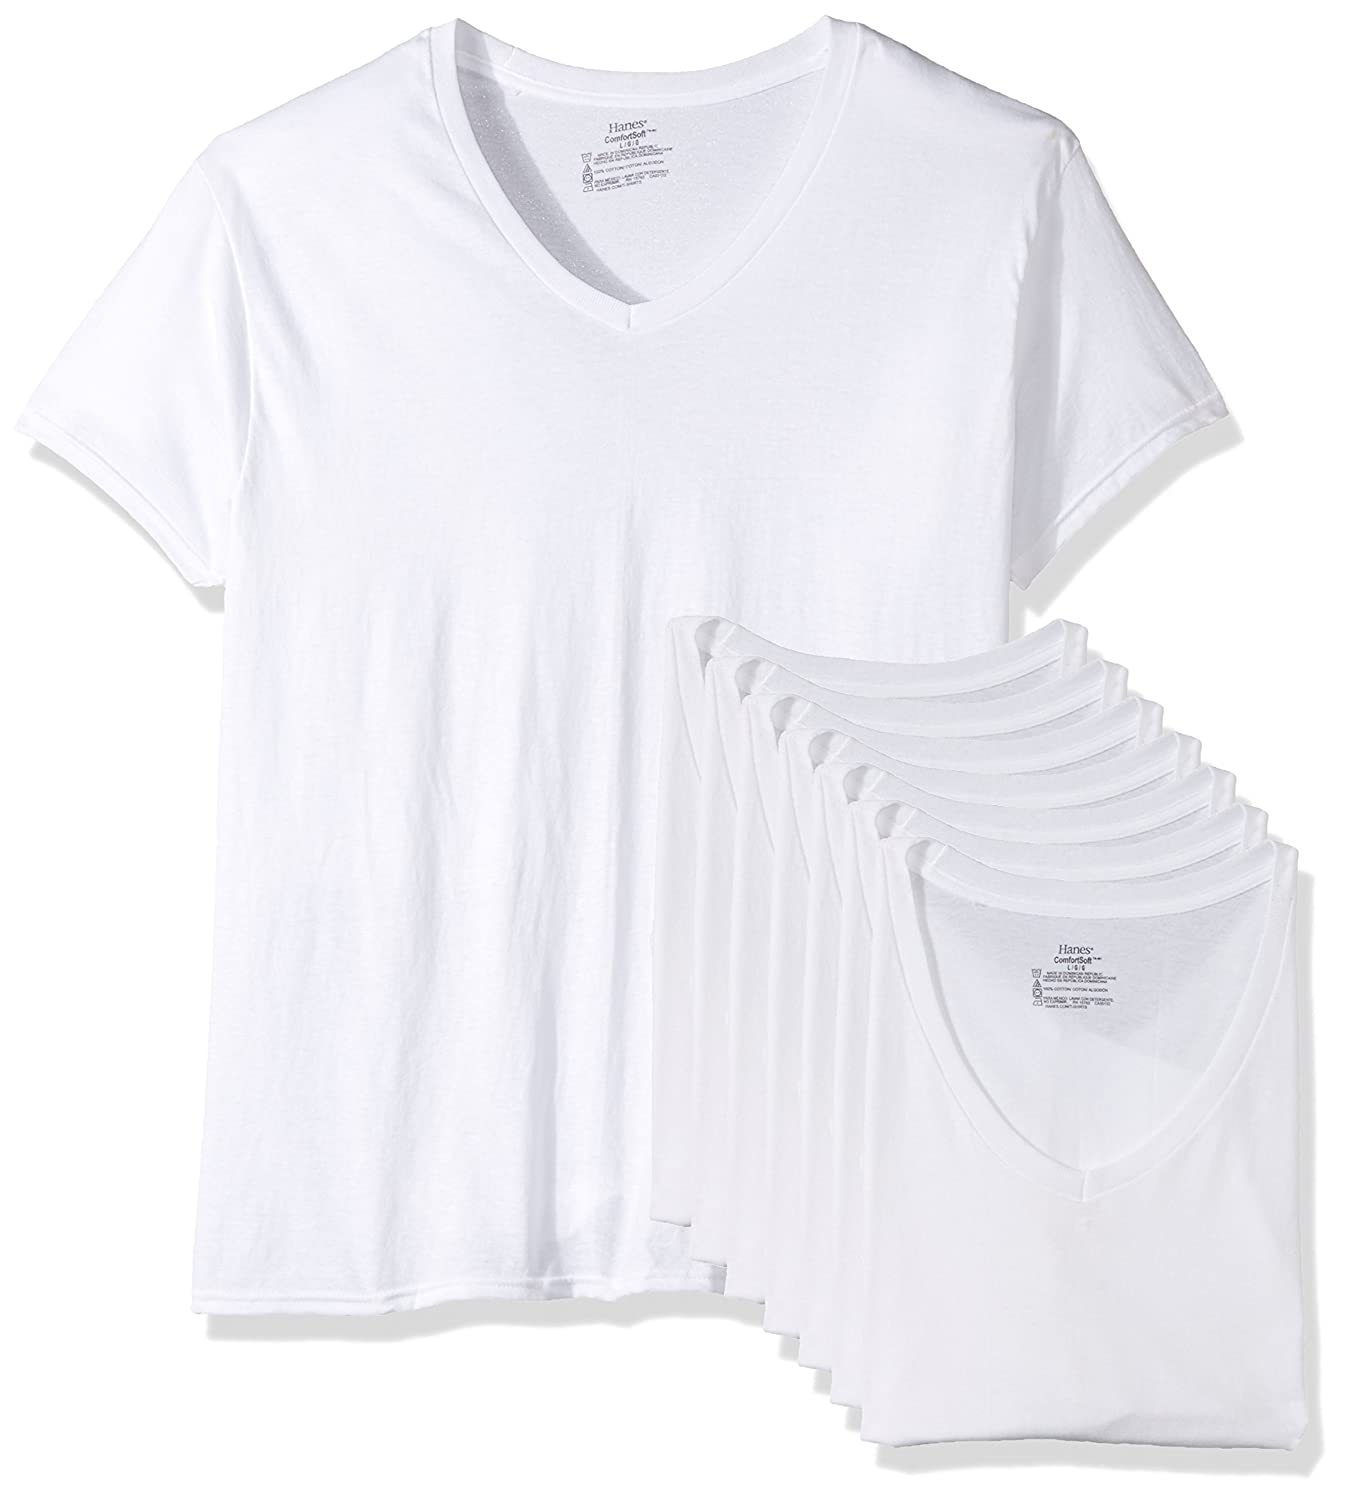 f8a701f6e3 Hanes Men's 7 Pack Comfortsoft Tagless V-Neck T-Shirt (Bonus Pack) at  Amazon Men's Clothing store: